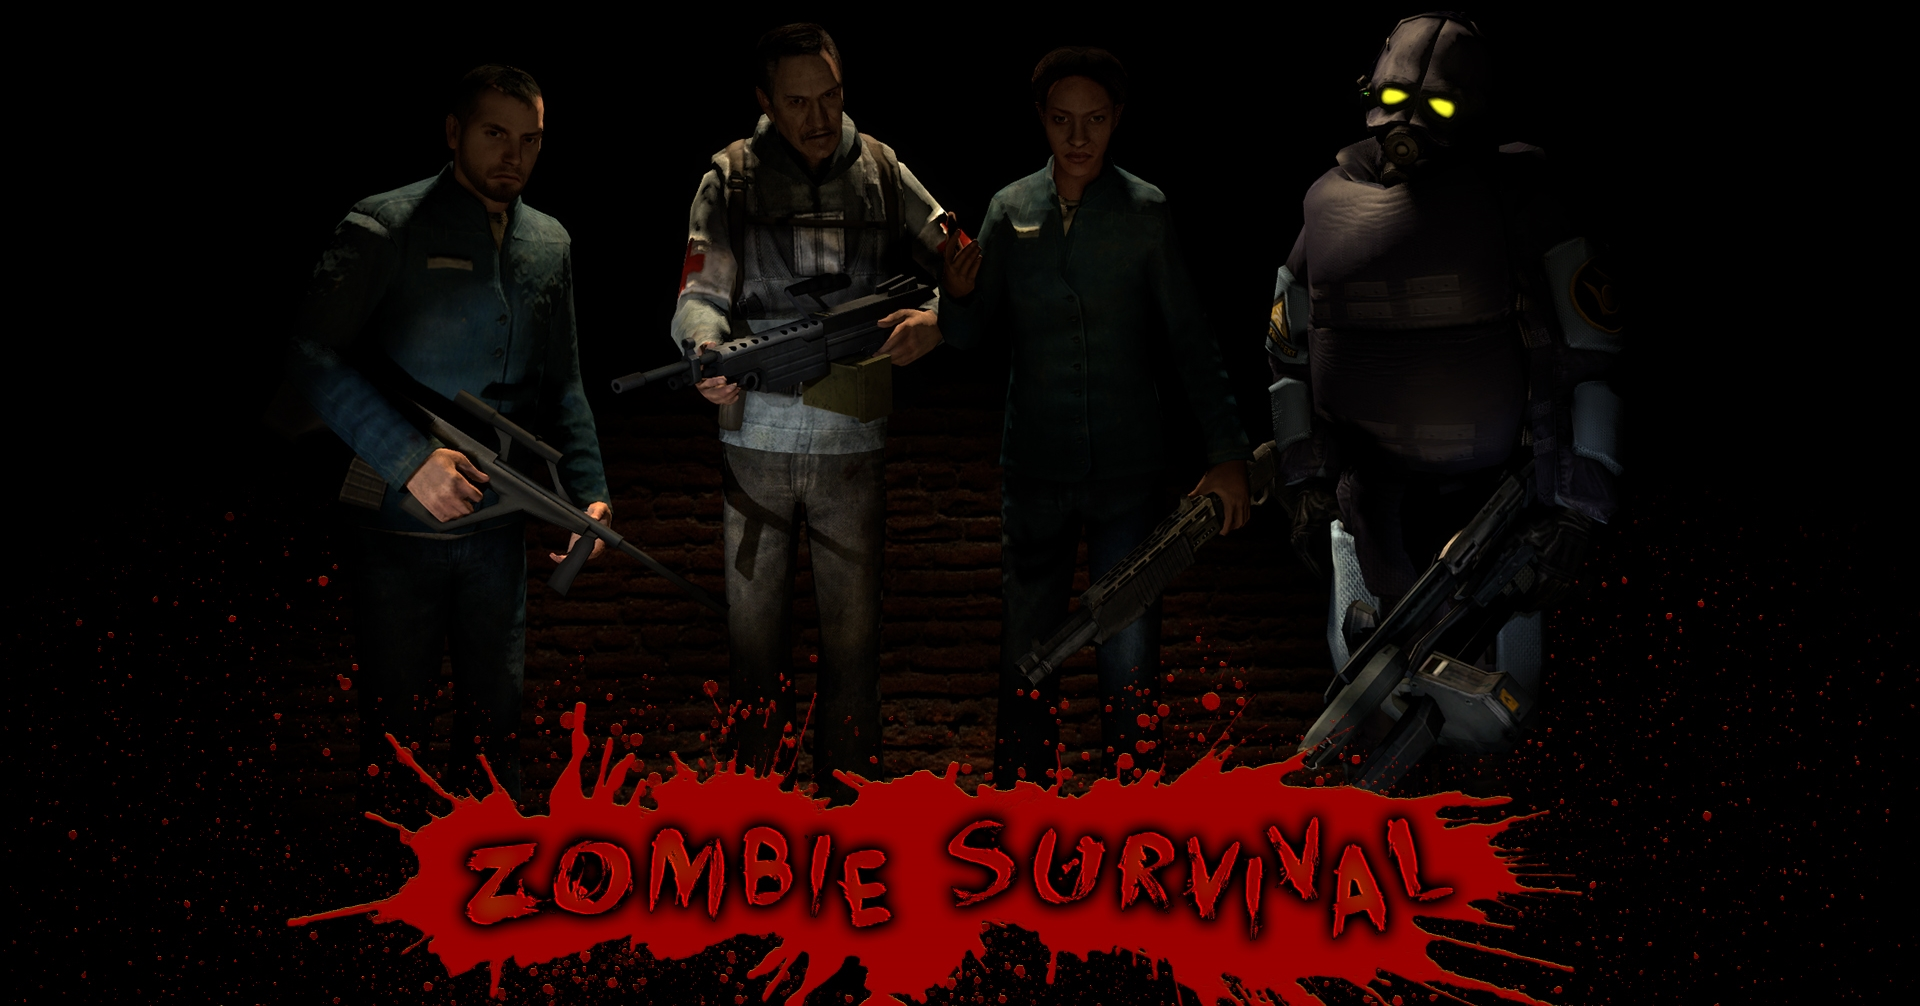 Steam Workshop :: Zombie Survival Maps on left 4 dead safe zone, safe lifting zone, i am legend safe zone, world war z safe zone, scary zombies zone, the walking dead safe zone, danger zone, gta 5 safe zone, hurricane safe zone, halloween safe zone, floor safe zone, bloody safe zone,